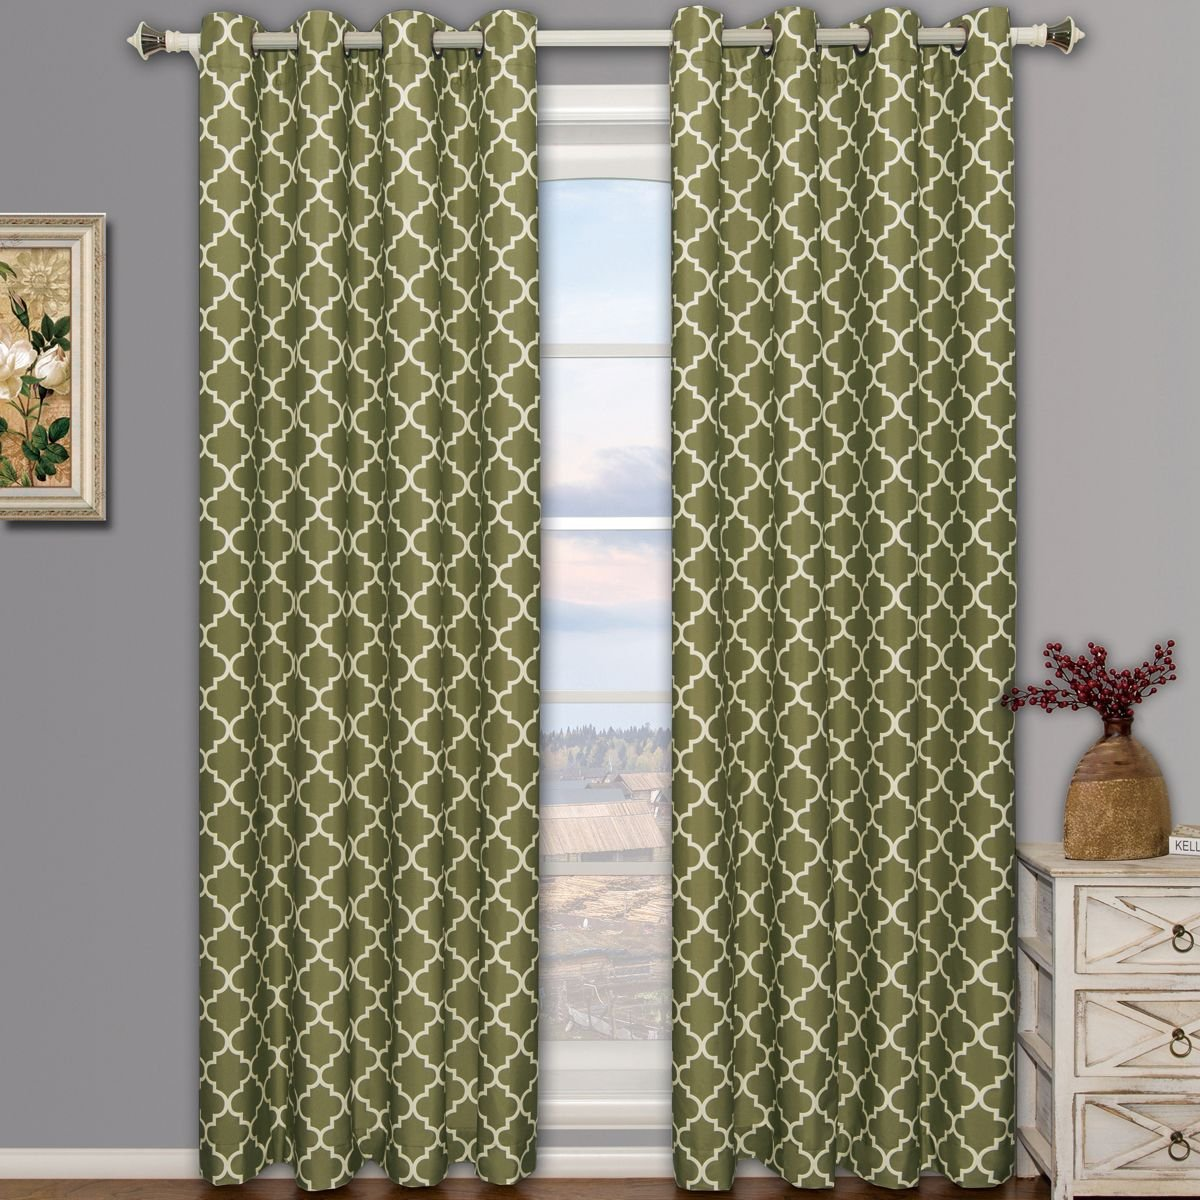 Meridian Green Grommet Room Darkening Window Curtain Panels, Pair / Set of 2 Panels